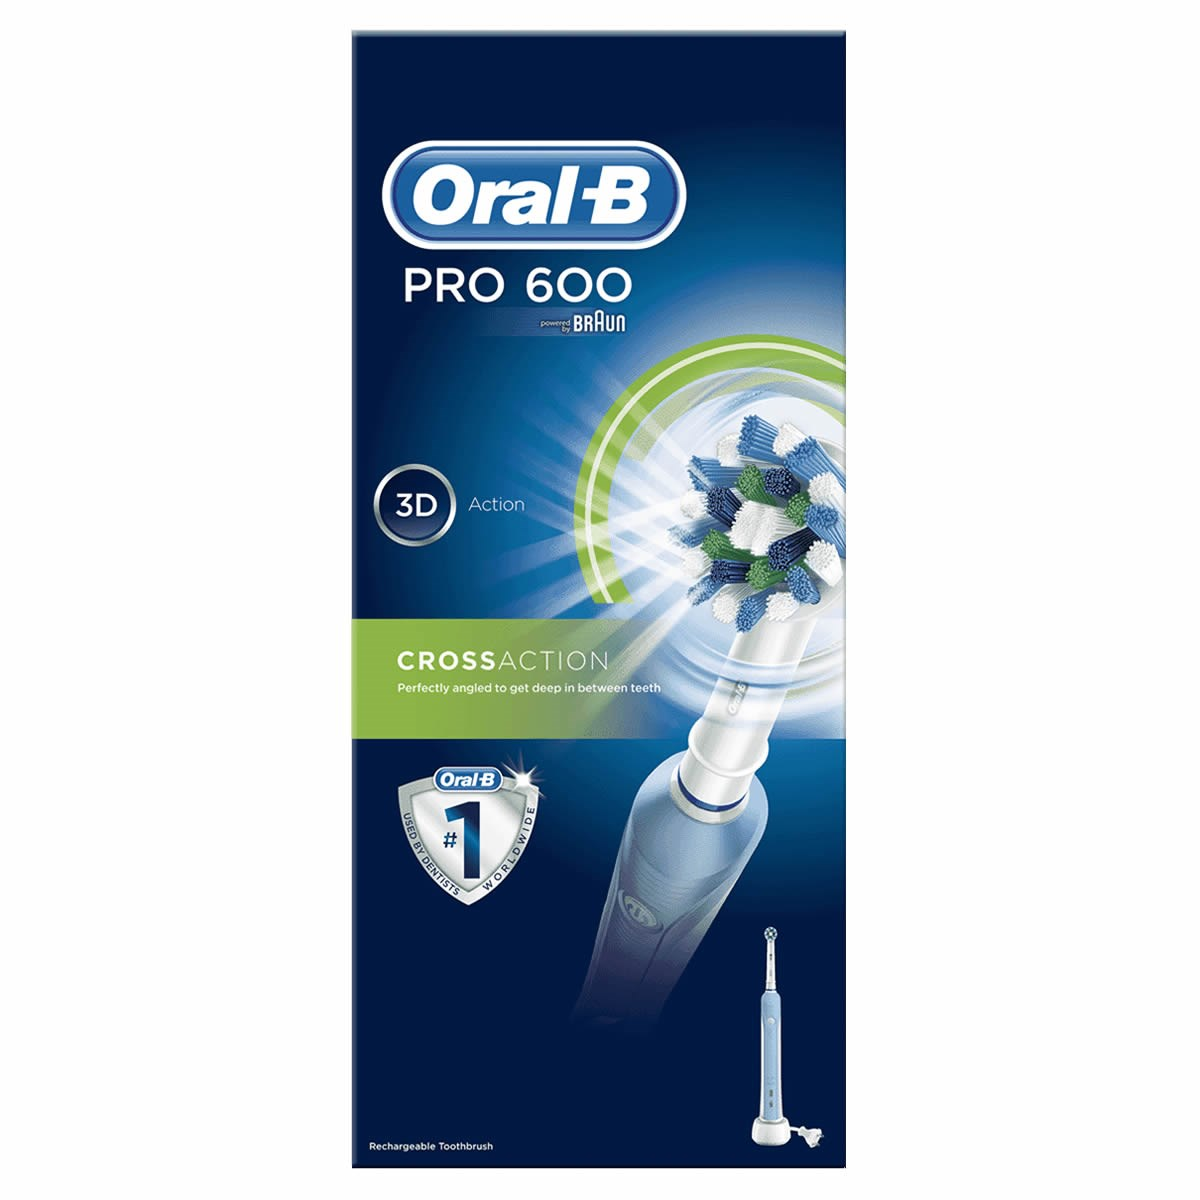 Oral-B PRO 600 CrossAction Rechargeable Electric Toothbrush